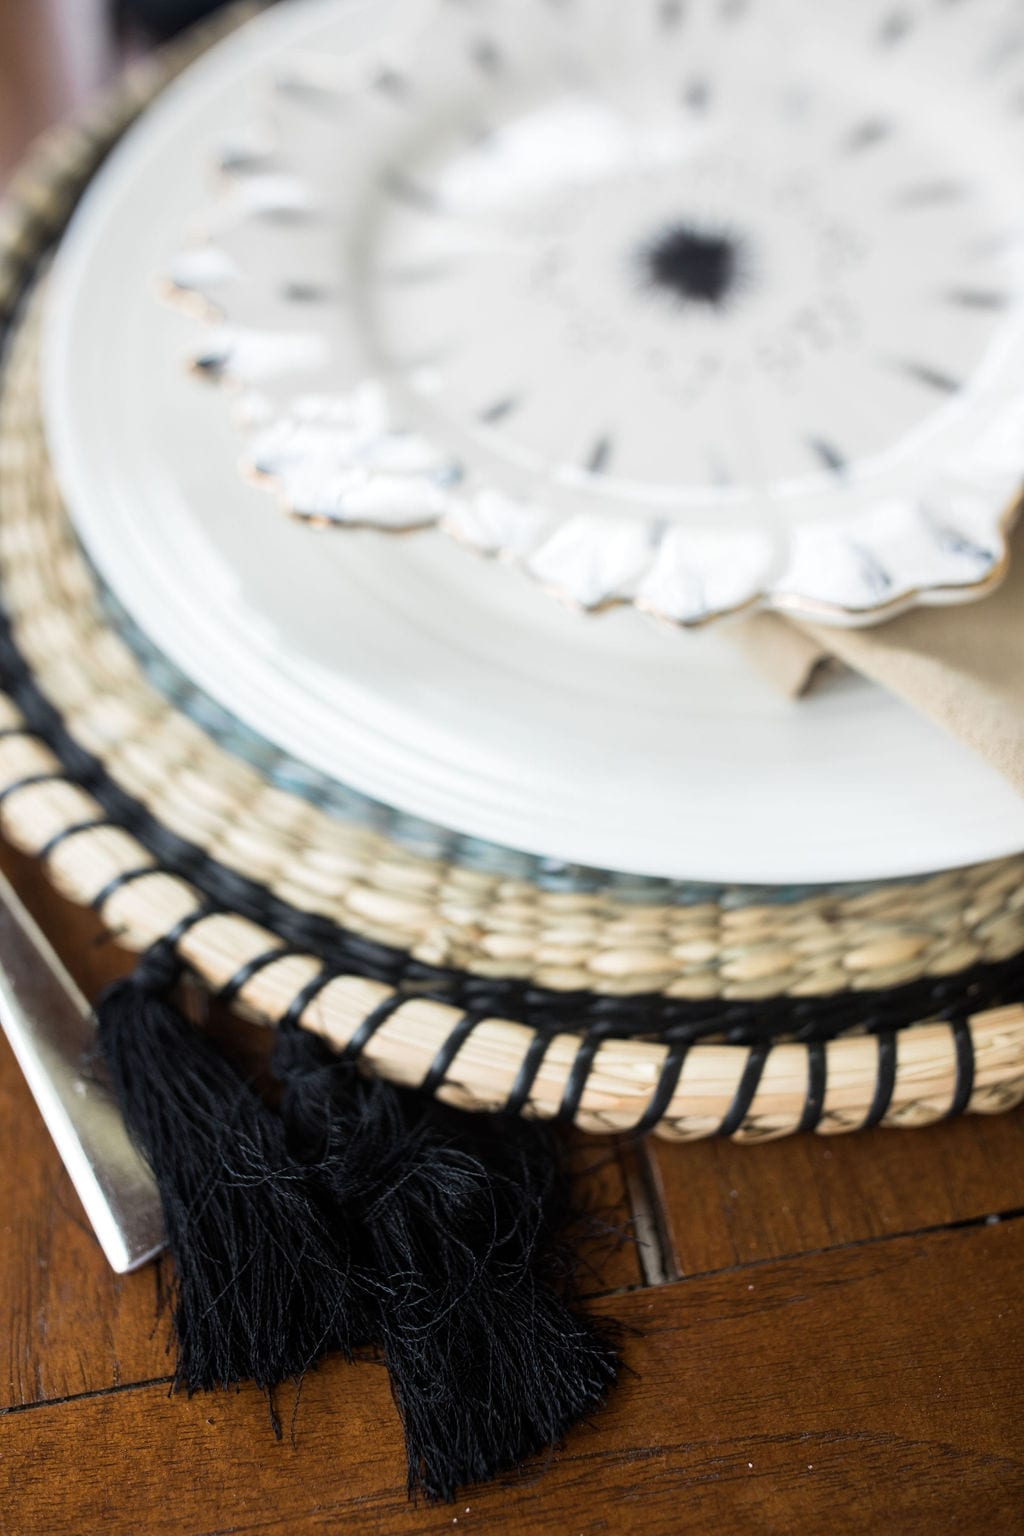 Anthropologie charger plates. Chargers with black tassels on round rotten placemat.